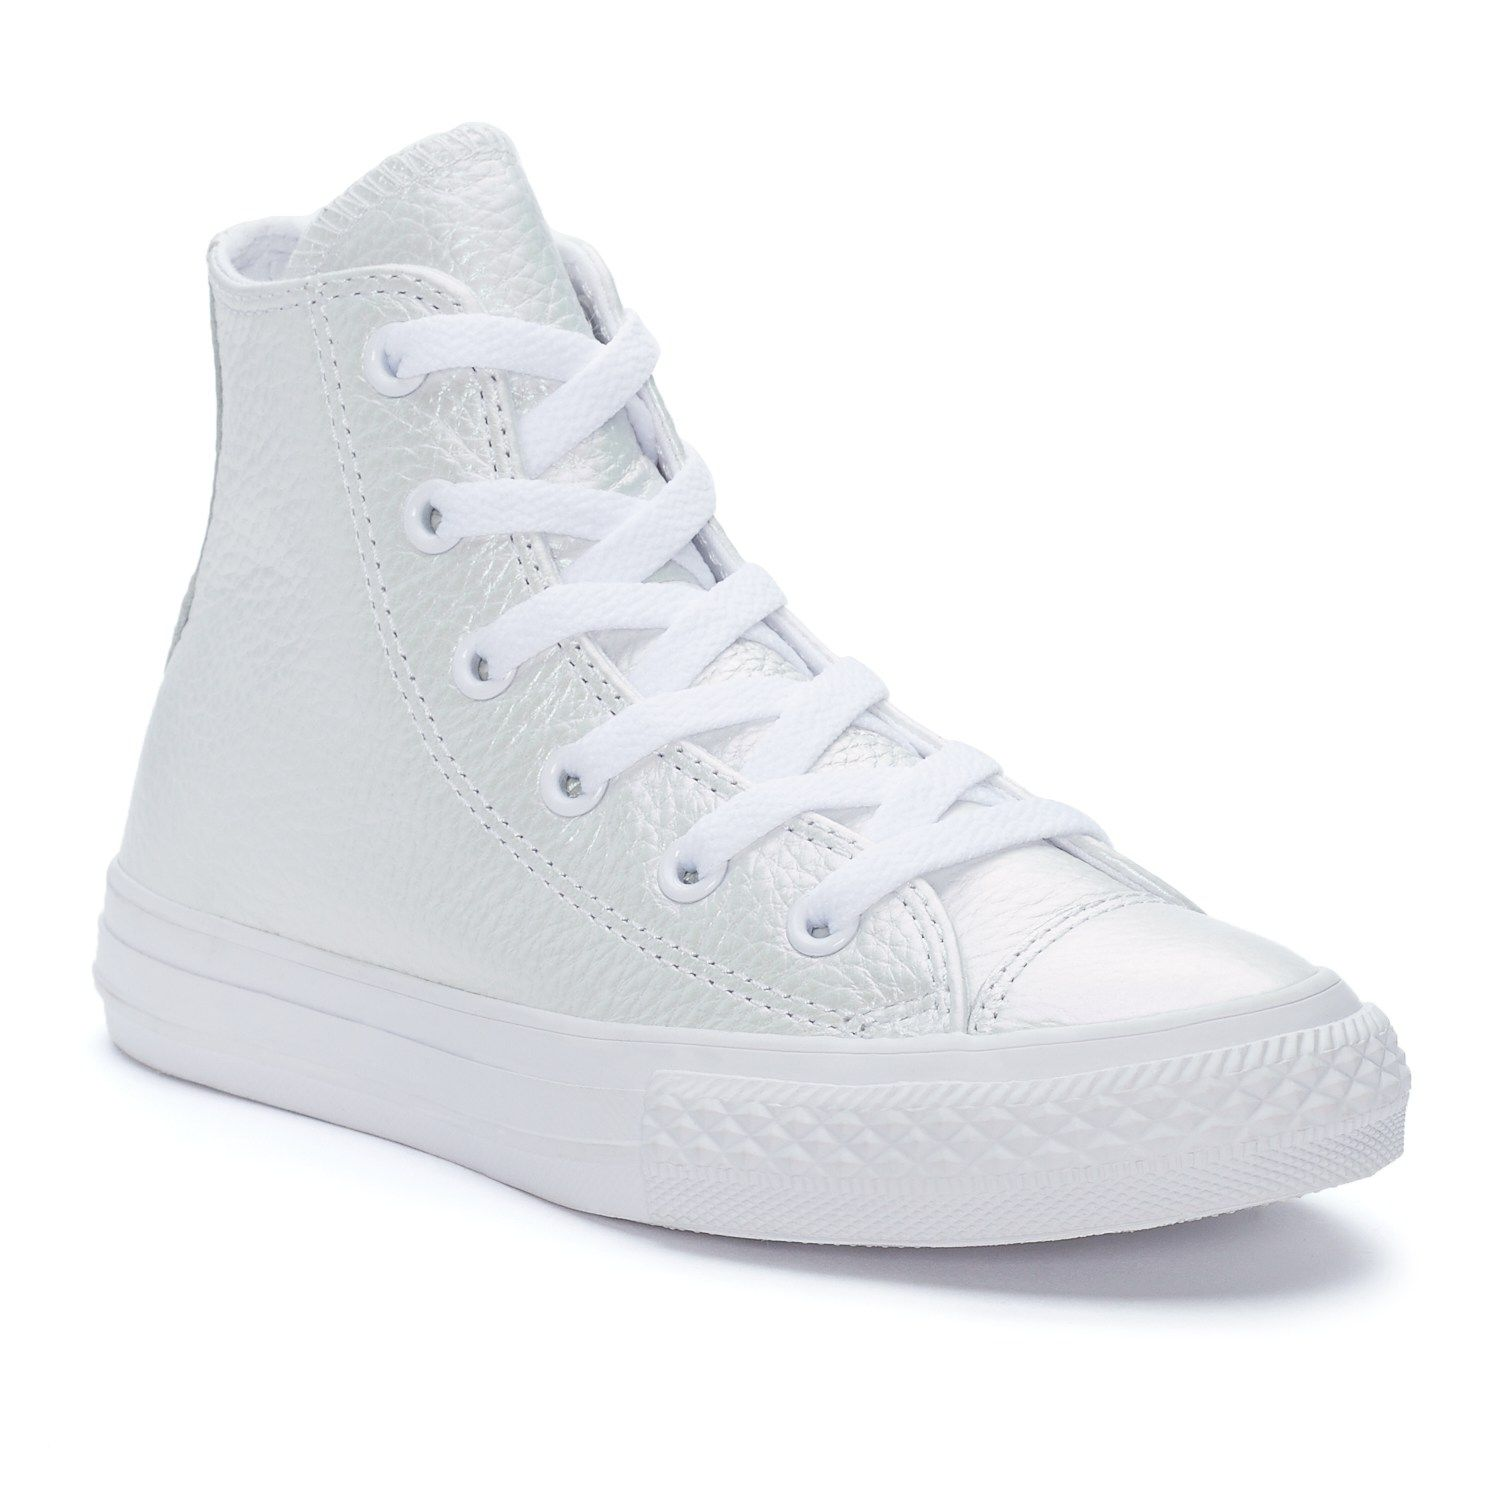 45b3e1ff4b65 Girls  Converse Chuck Taylor All Star Iridescent Leather High Top Sneakers